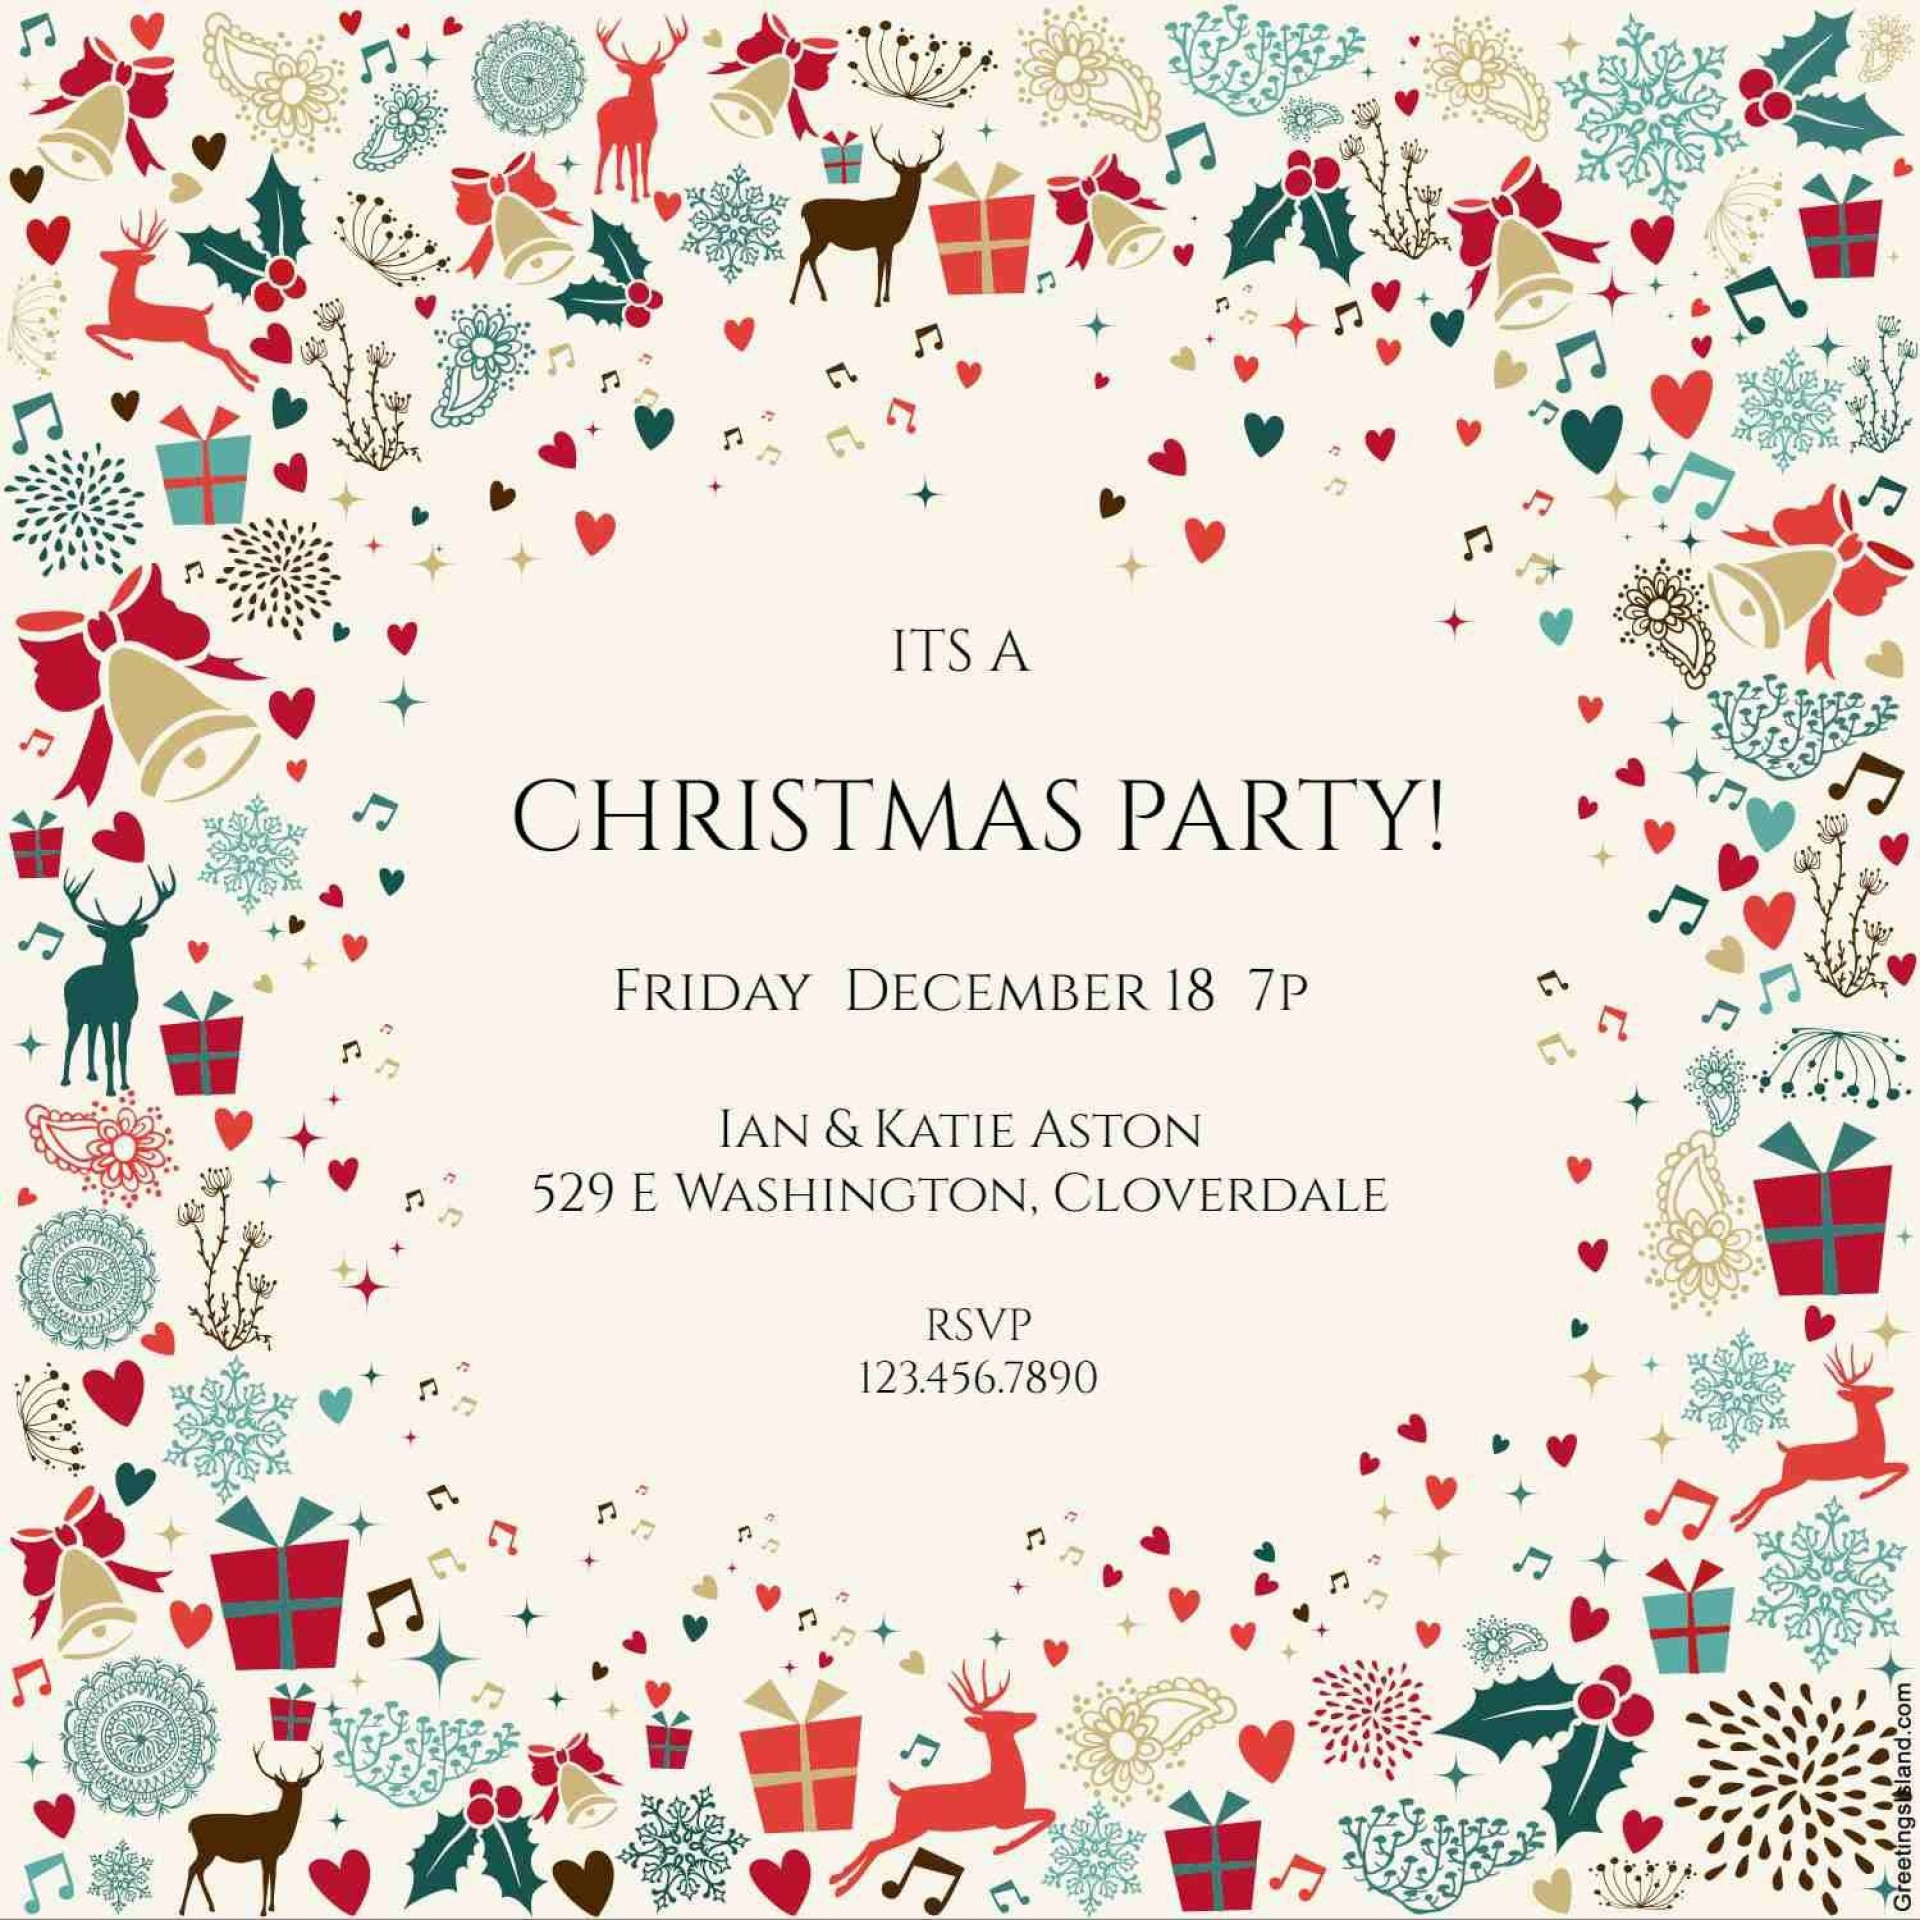 006 Breathtaking Christma Party Invite Template Word Photo  Holiday Free Invitation Wording Example1920